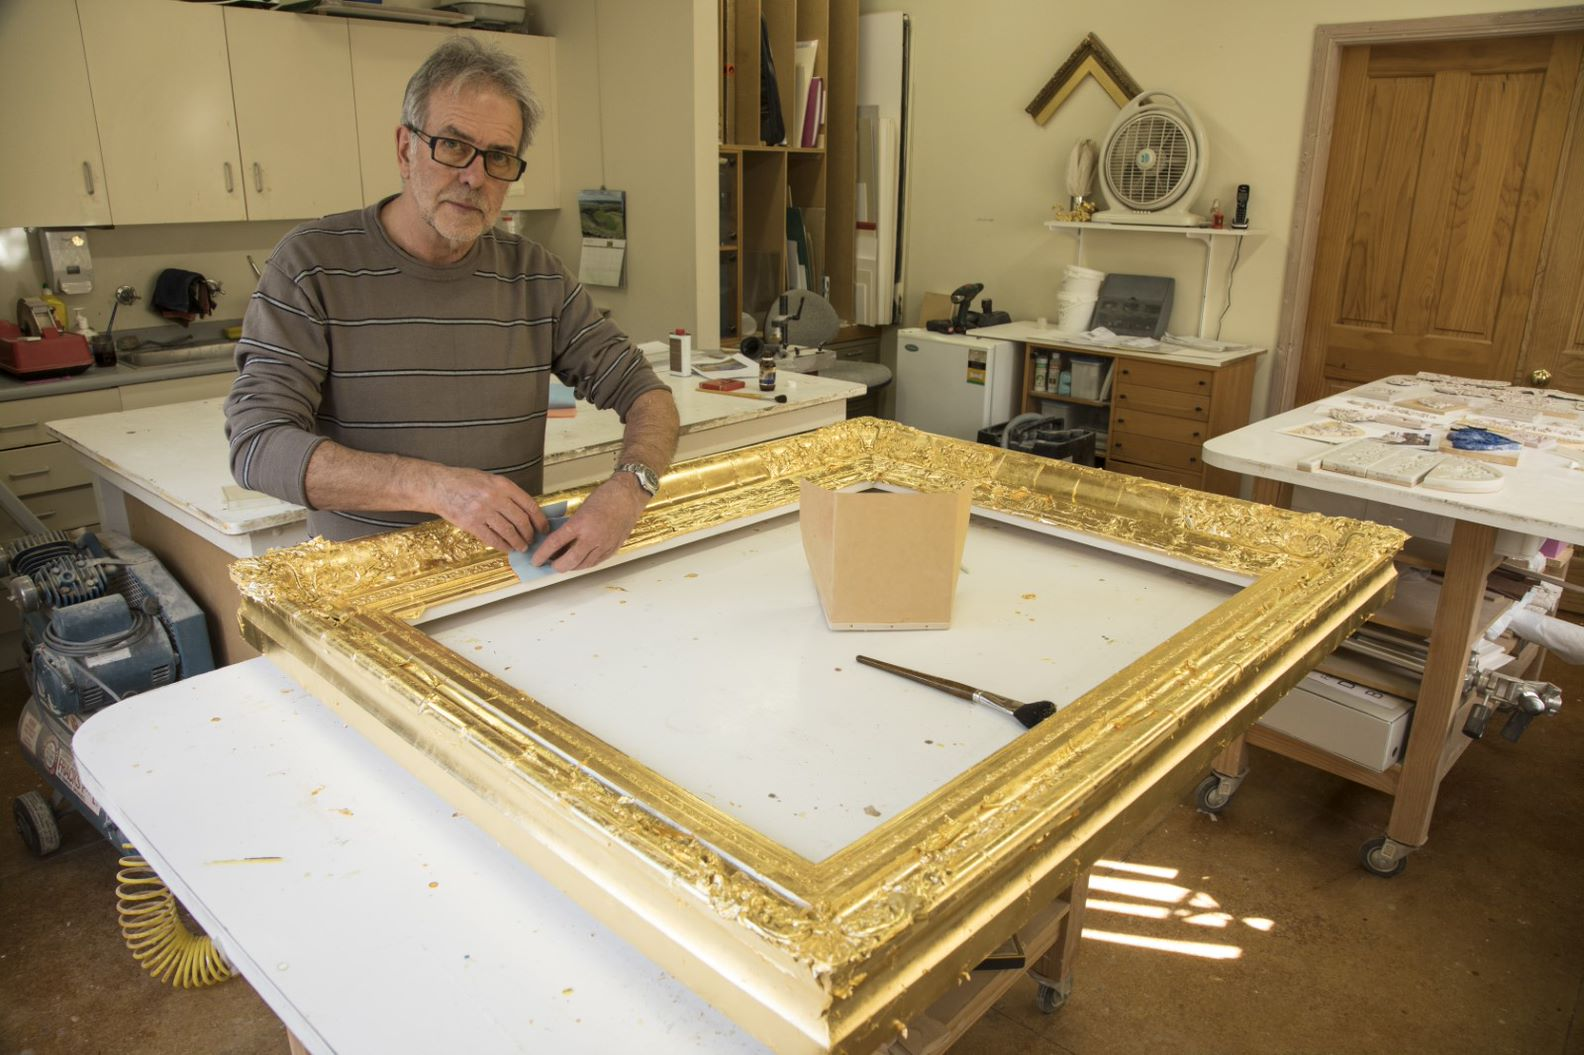 David Butler prepares a new frame for the painting